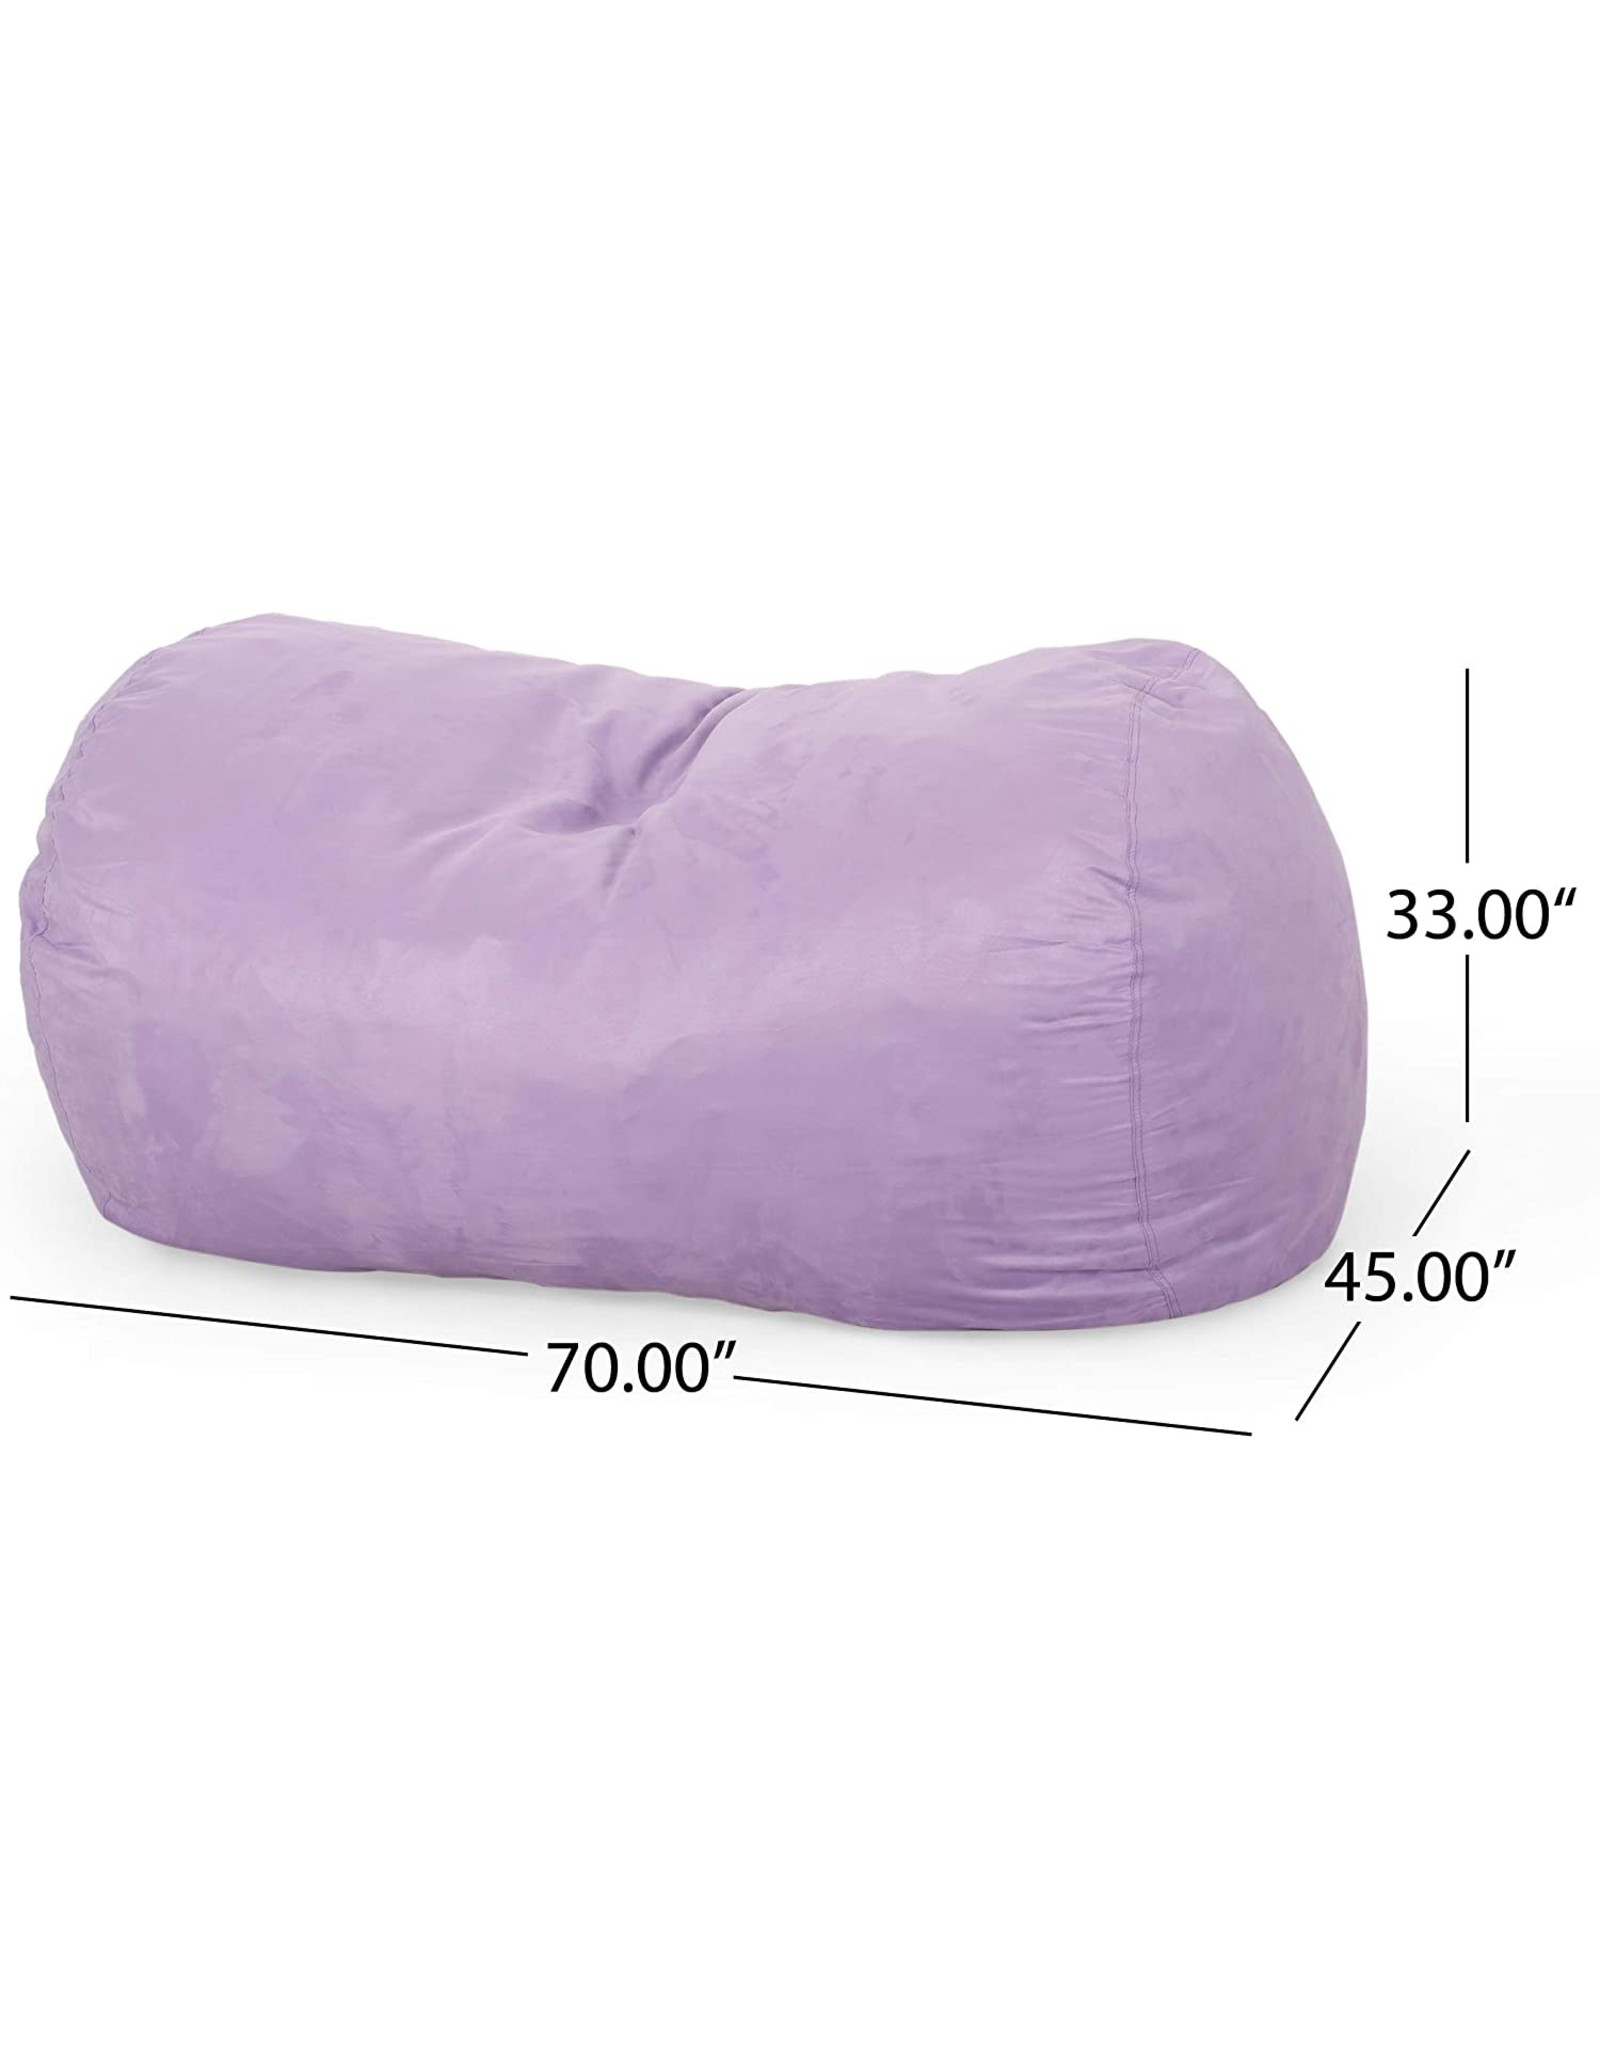 Christopher Knight Christopher Knight Home Shawn Modern 6.5 Foot Microfiber Pastel Bean Bag, Lavender